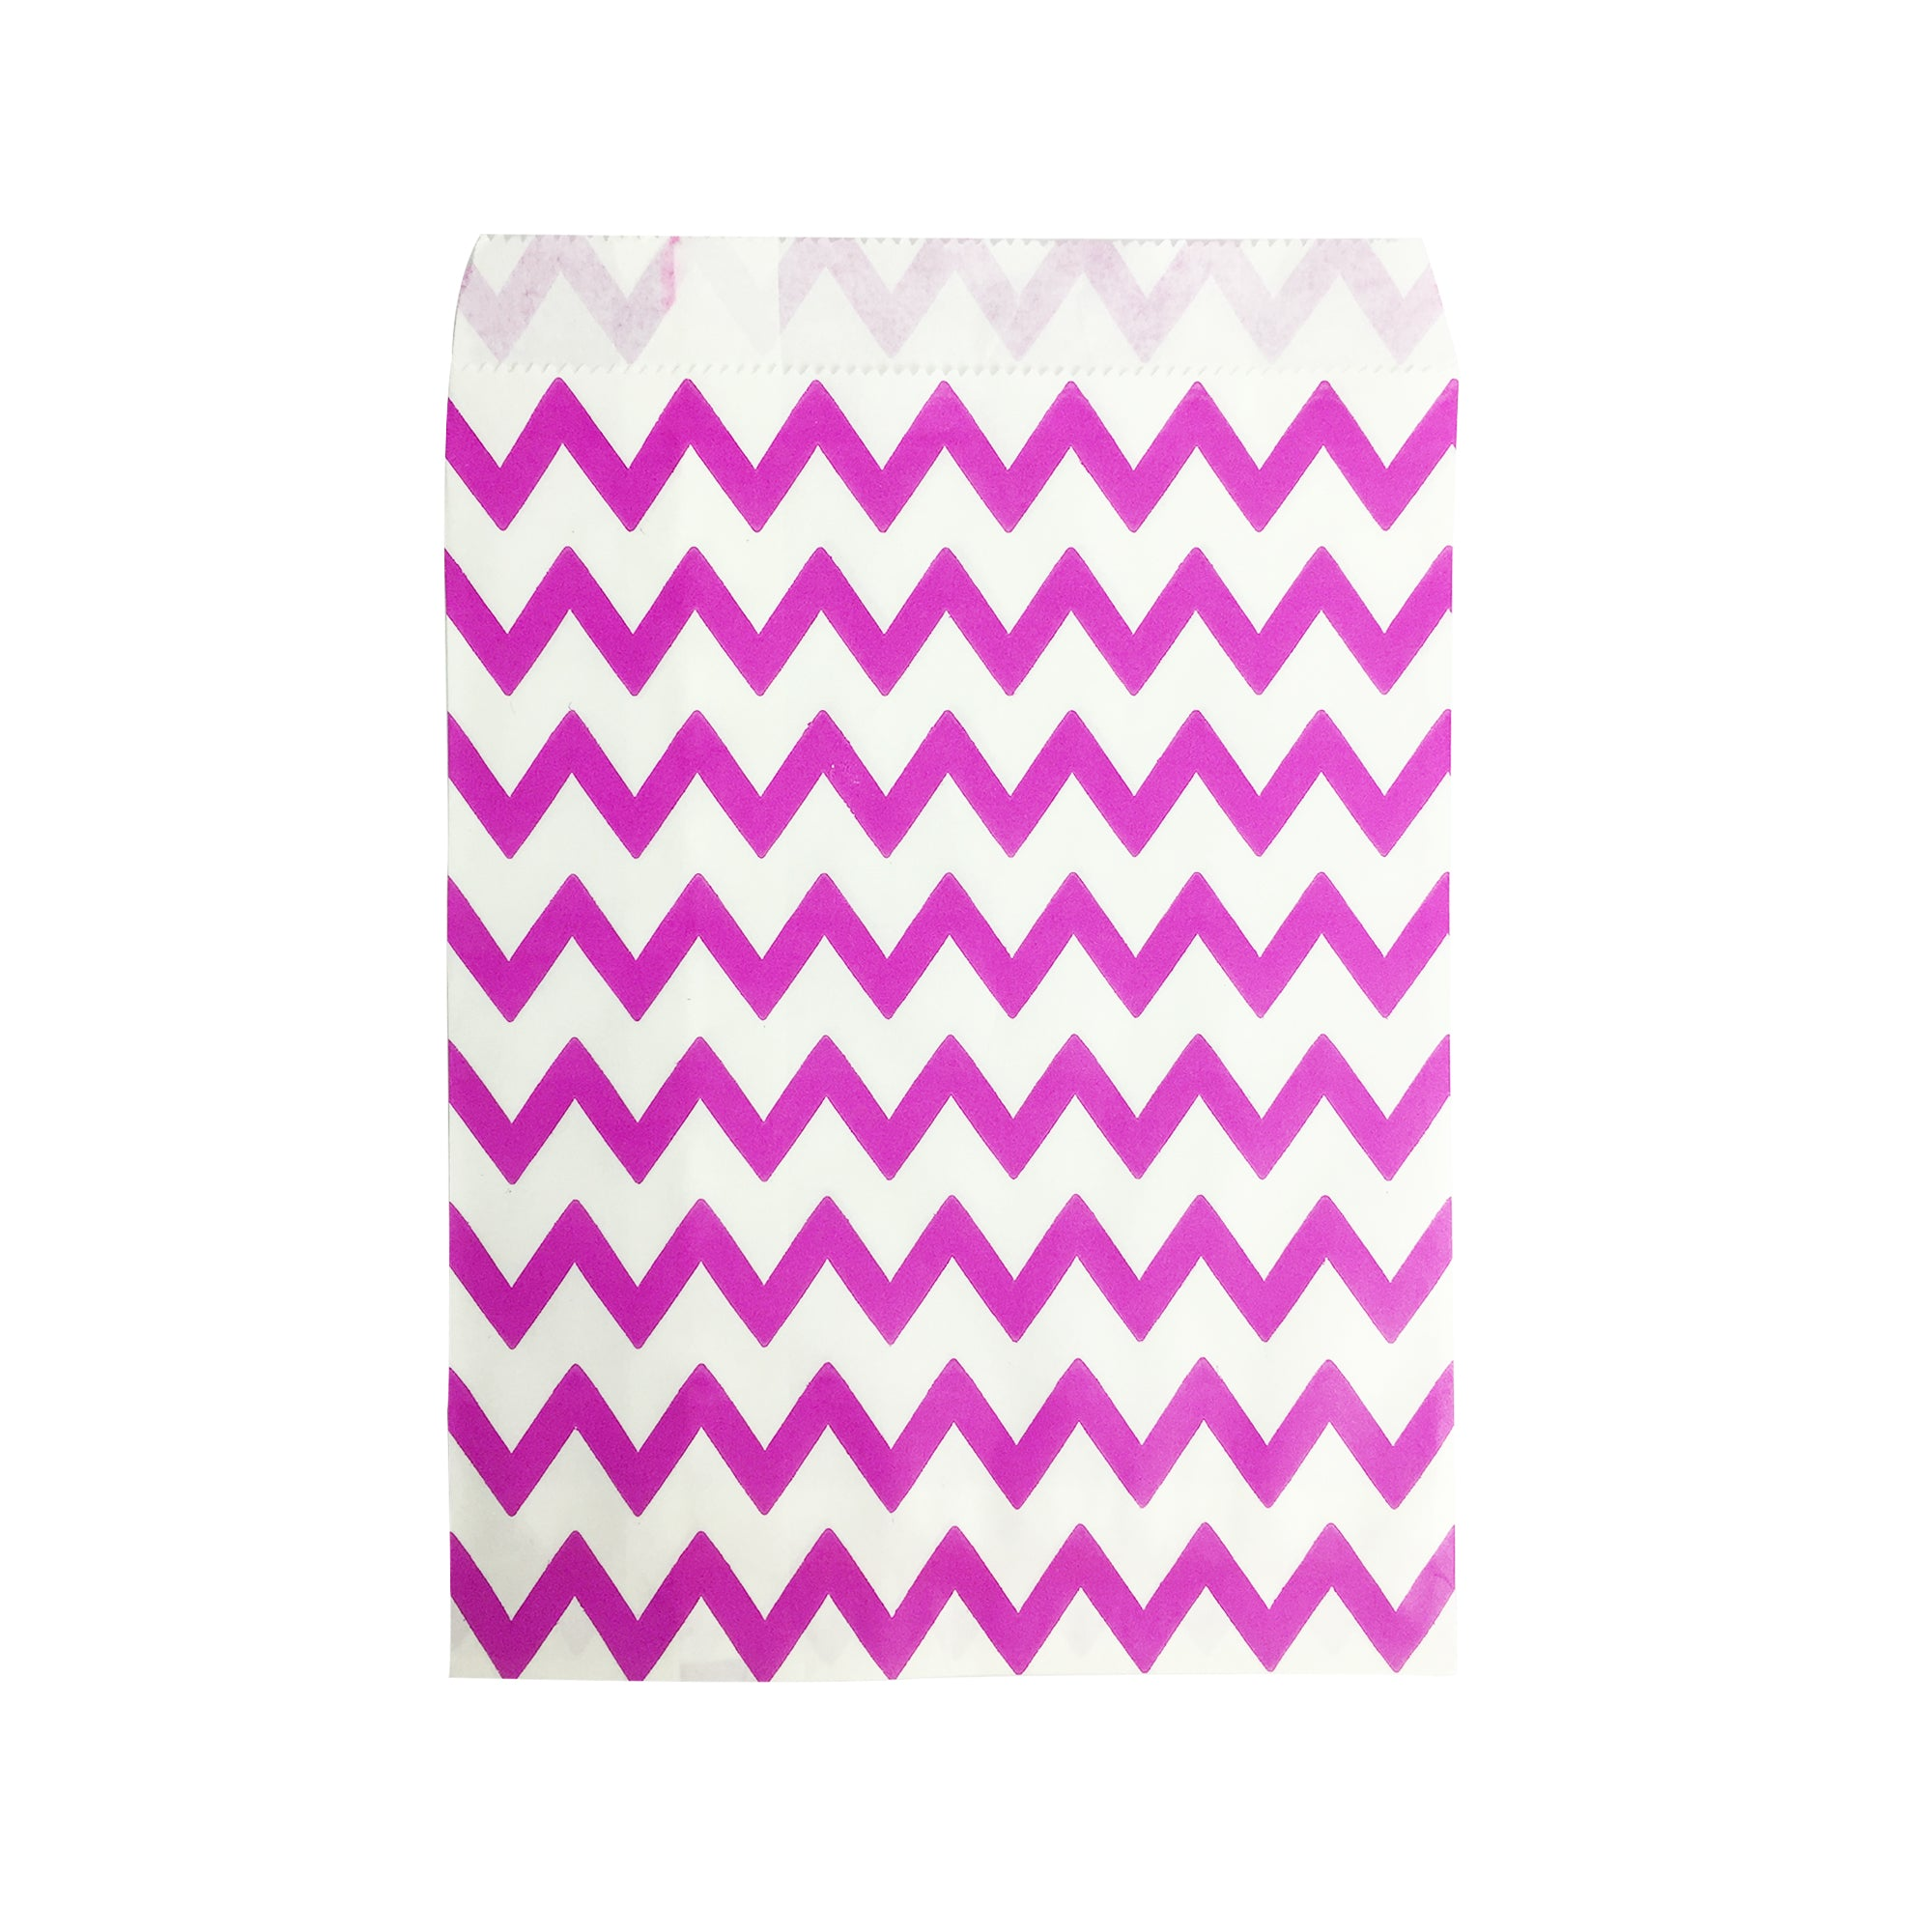 Big Dark Pink Zigzag Paper Bag - 100 pcs